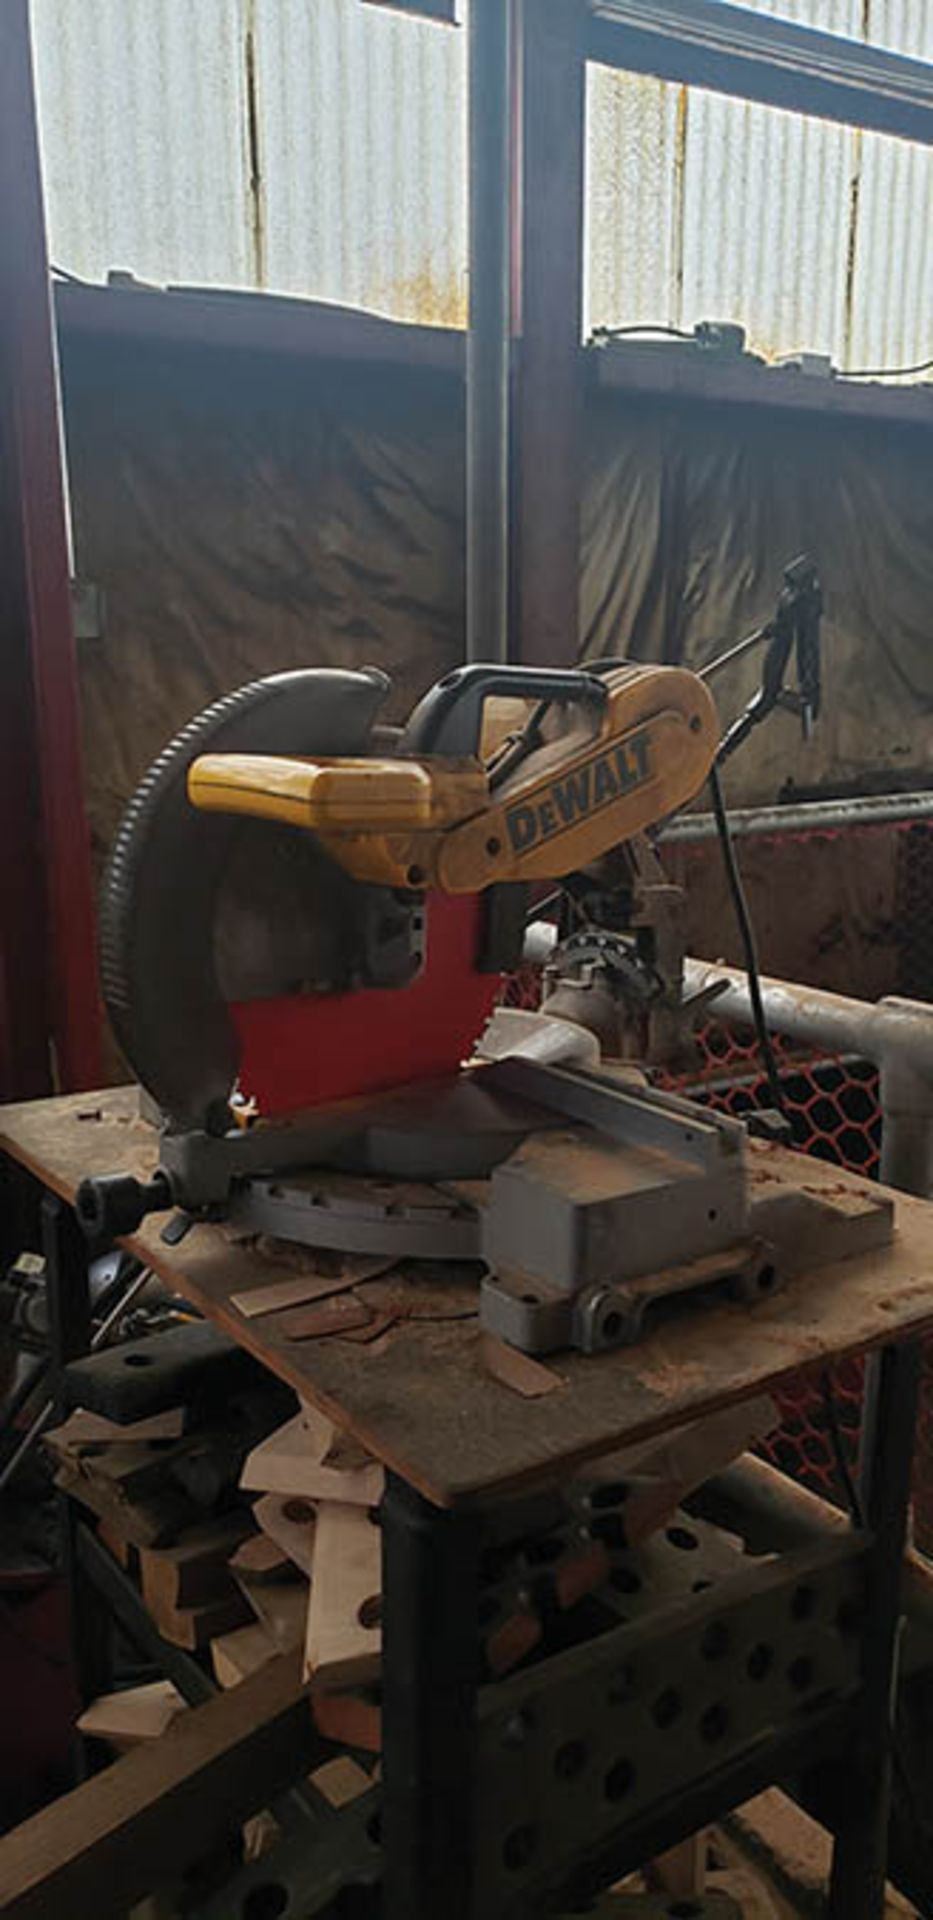 Lot 606 - DELTA 17-900 DRILL PRESS, S/N 9348, JET 6'' BENCH GRINDER JBG6A & DEWALT COMPOUND MITER SAW (